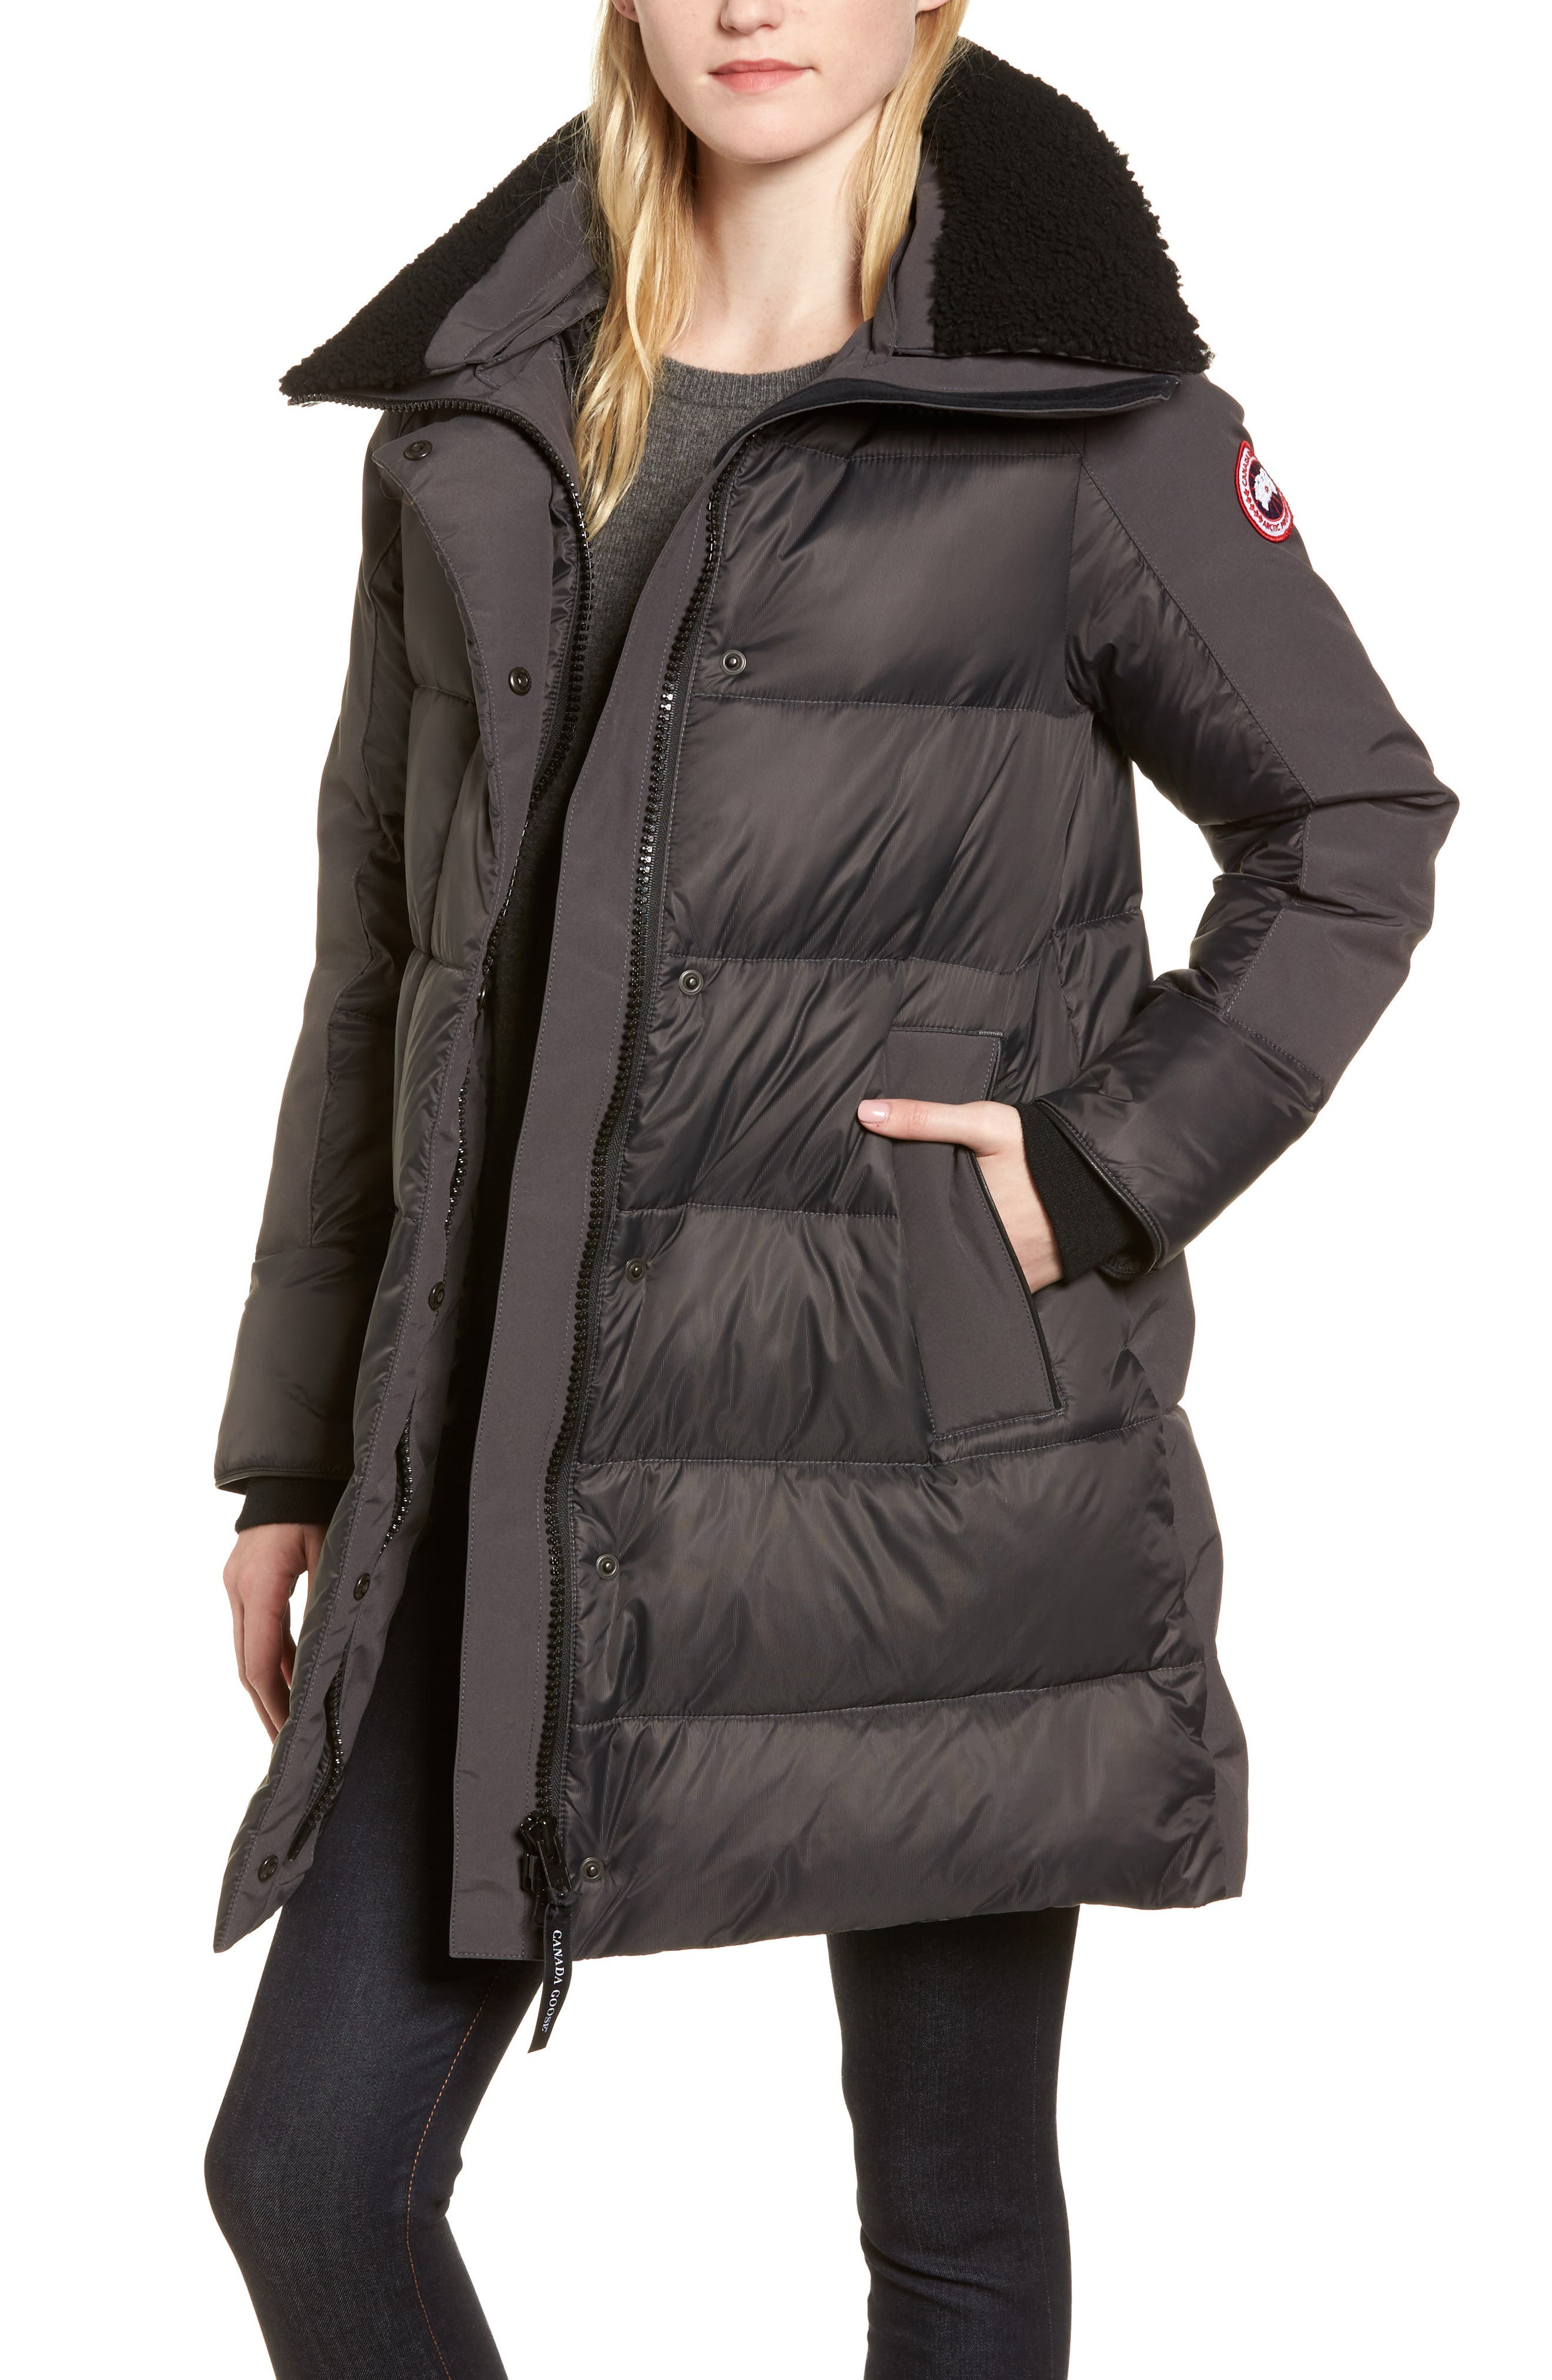 Canada Goose Altona Water Resistant 750-Fill Power Down Parka With Genuine Shearling Collar, (0) - Grey